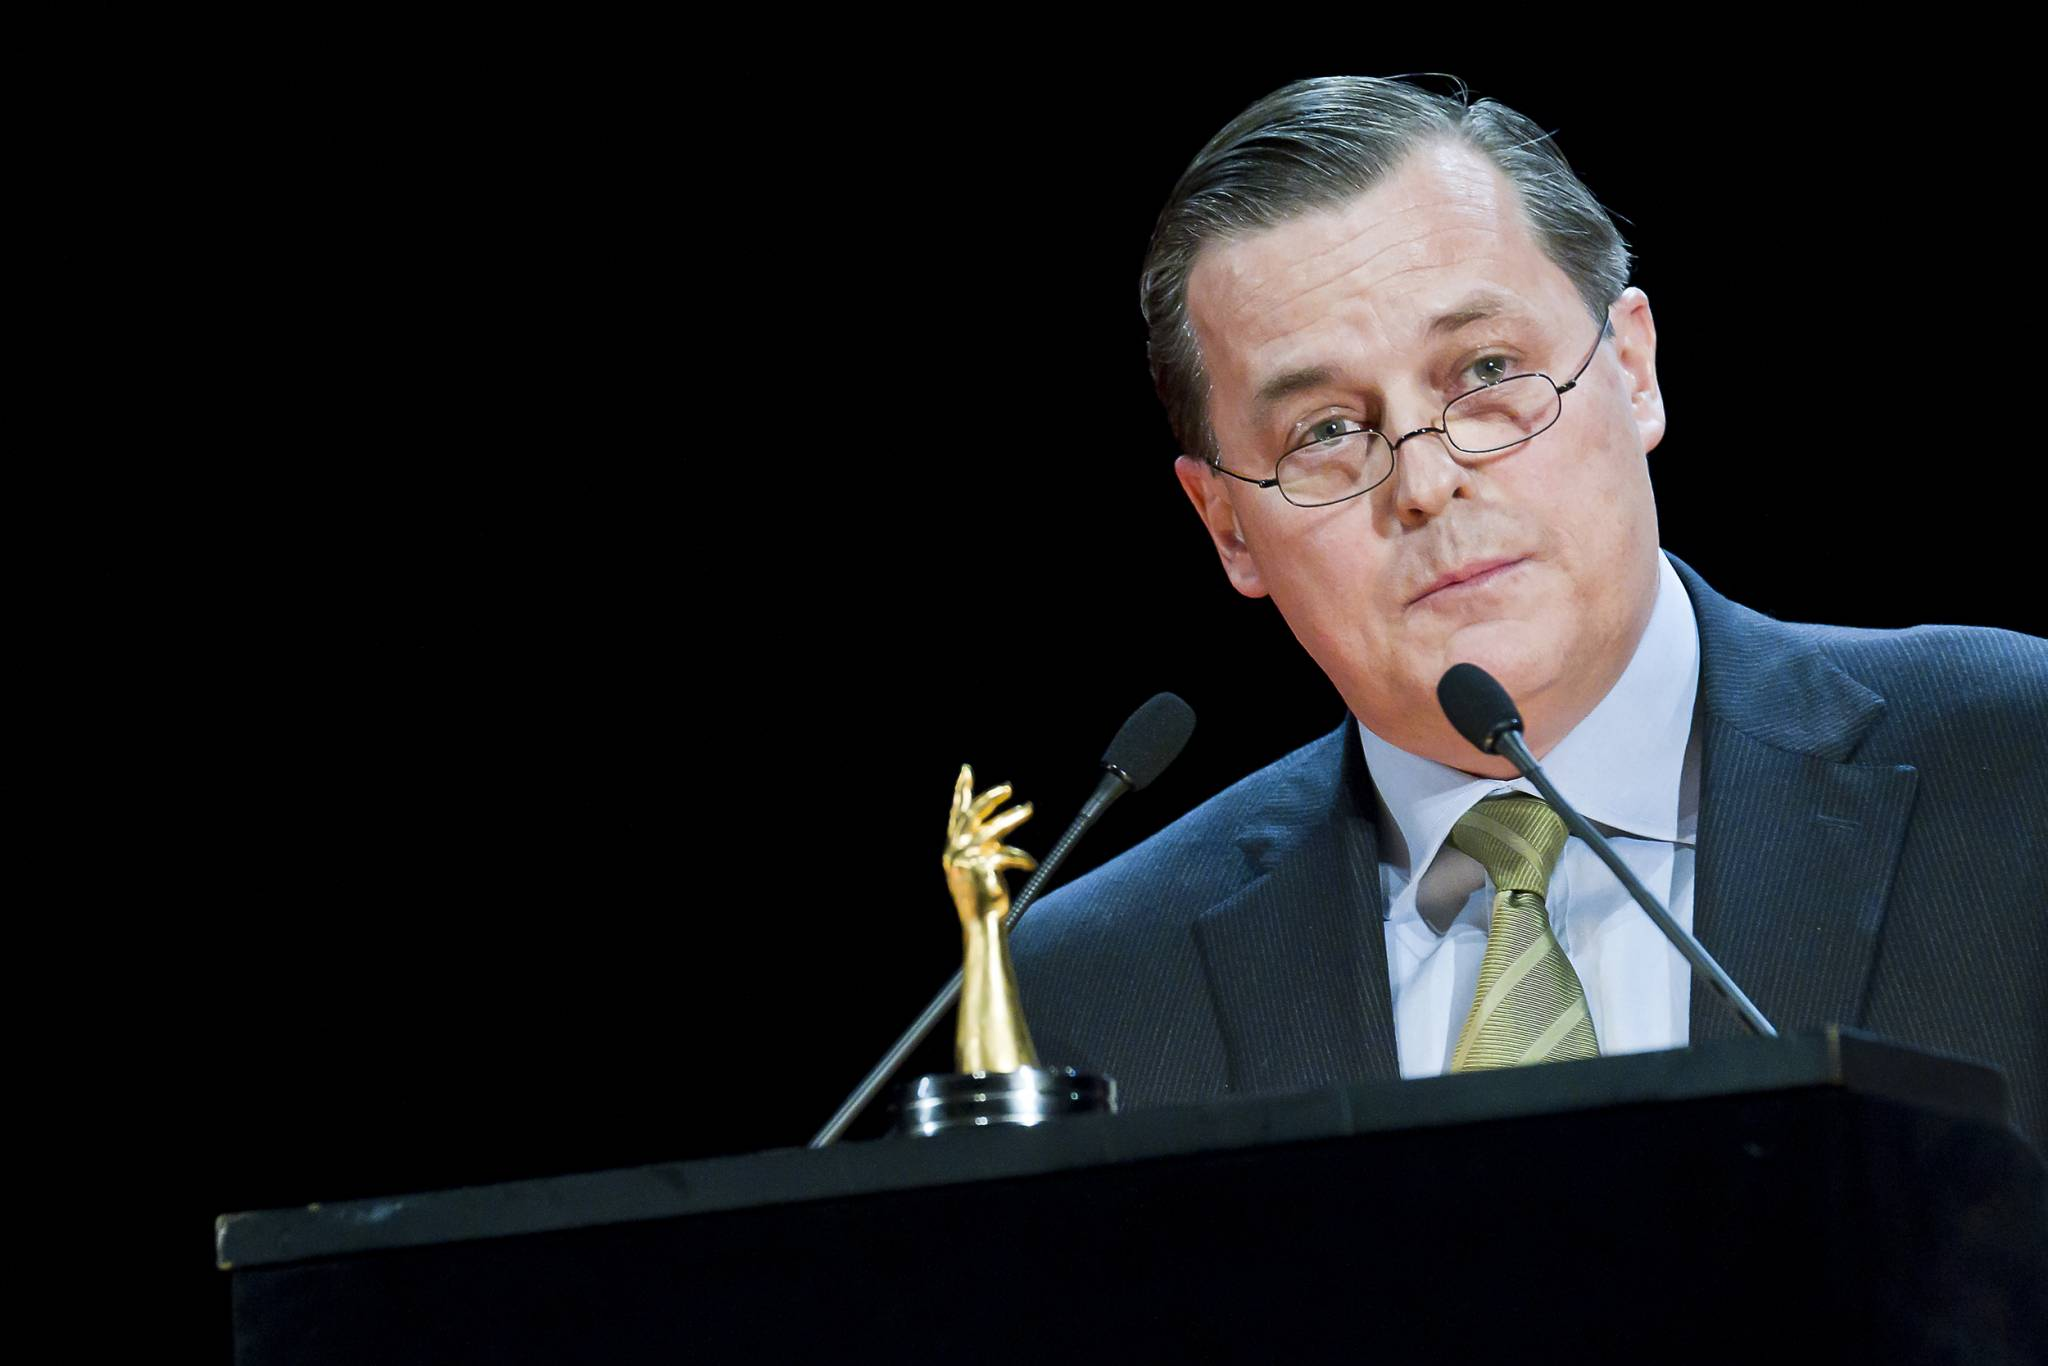 Pillippe Merk, CEO of Audemars Piguet, the winner brand of the 2011 Public Prize